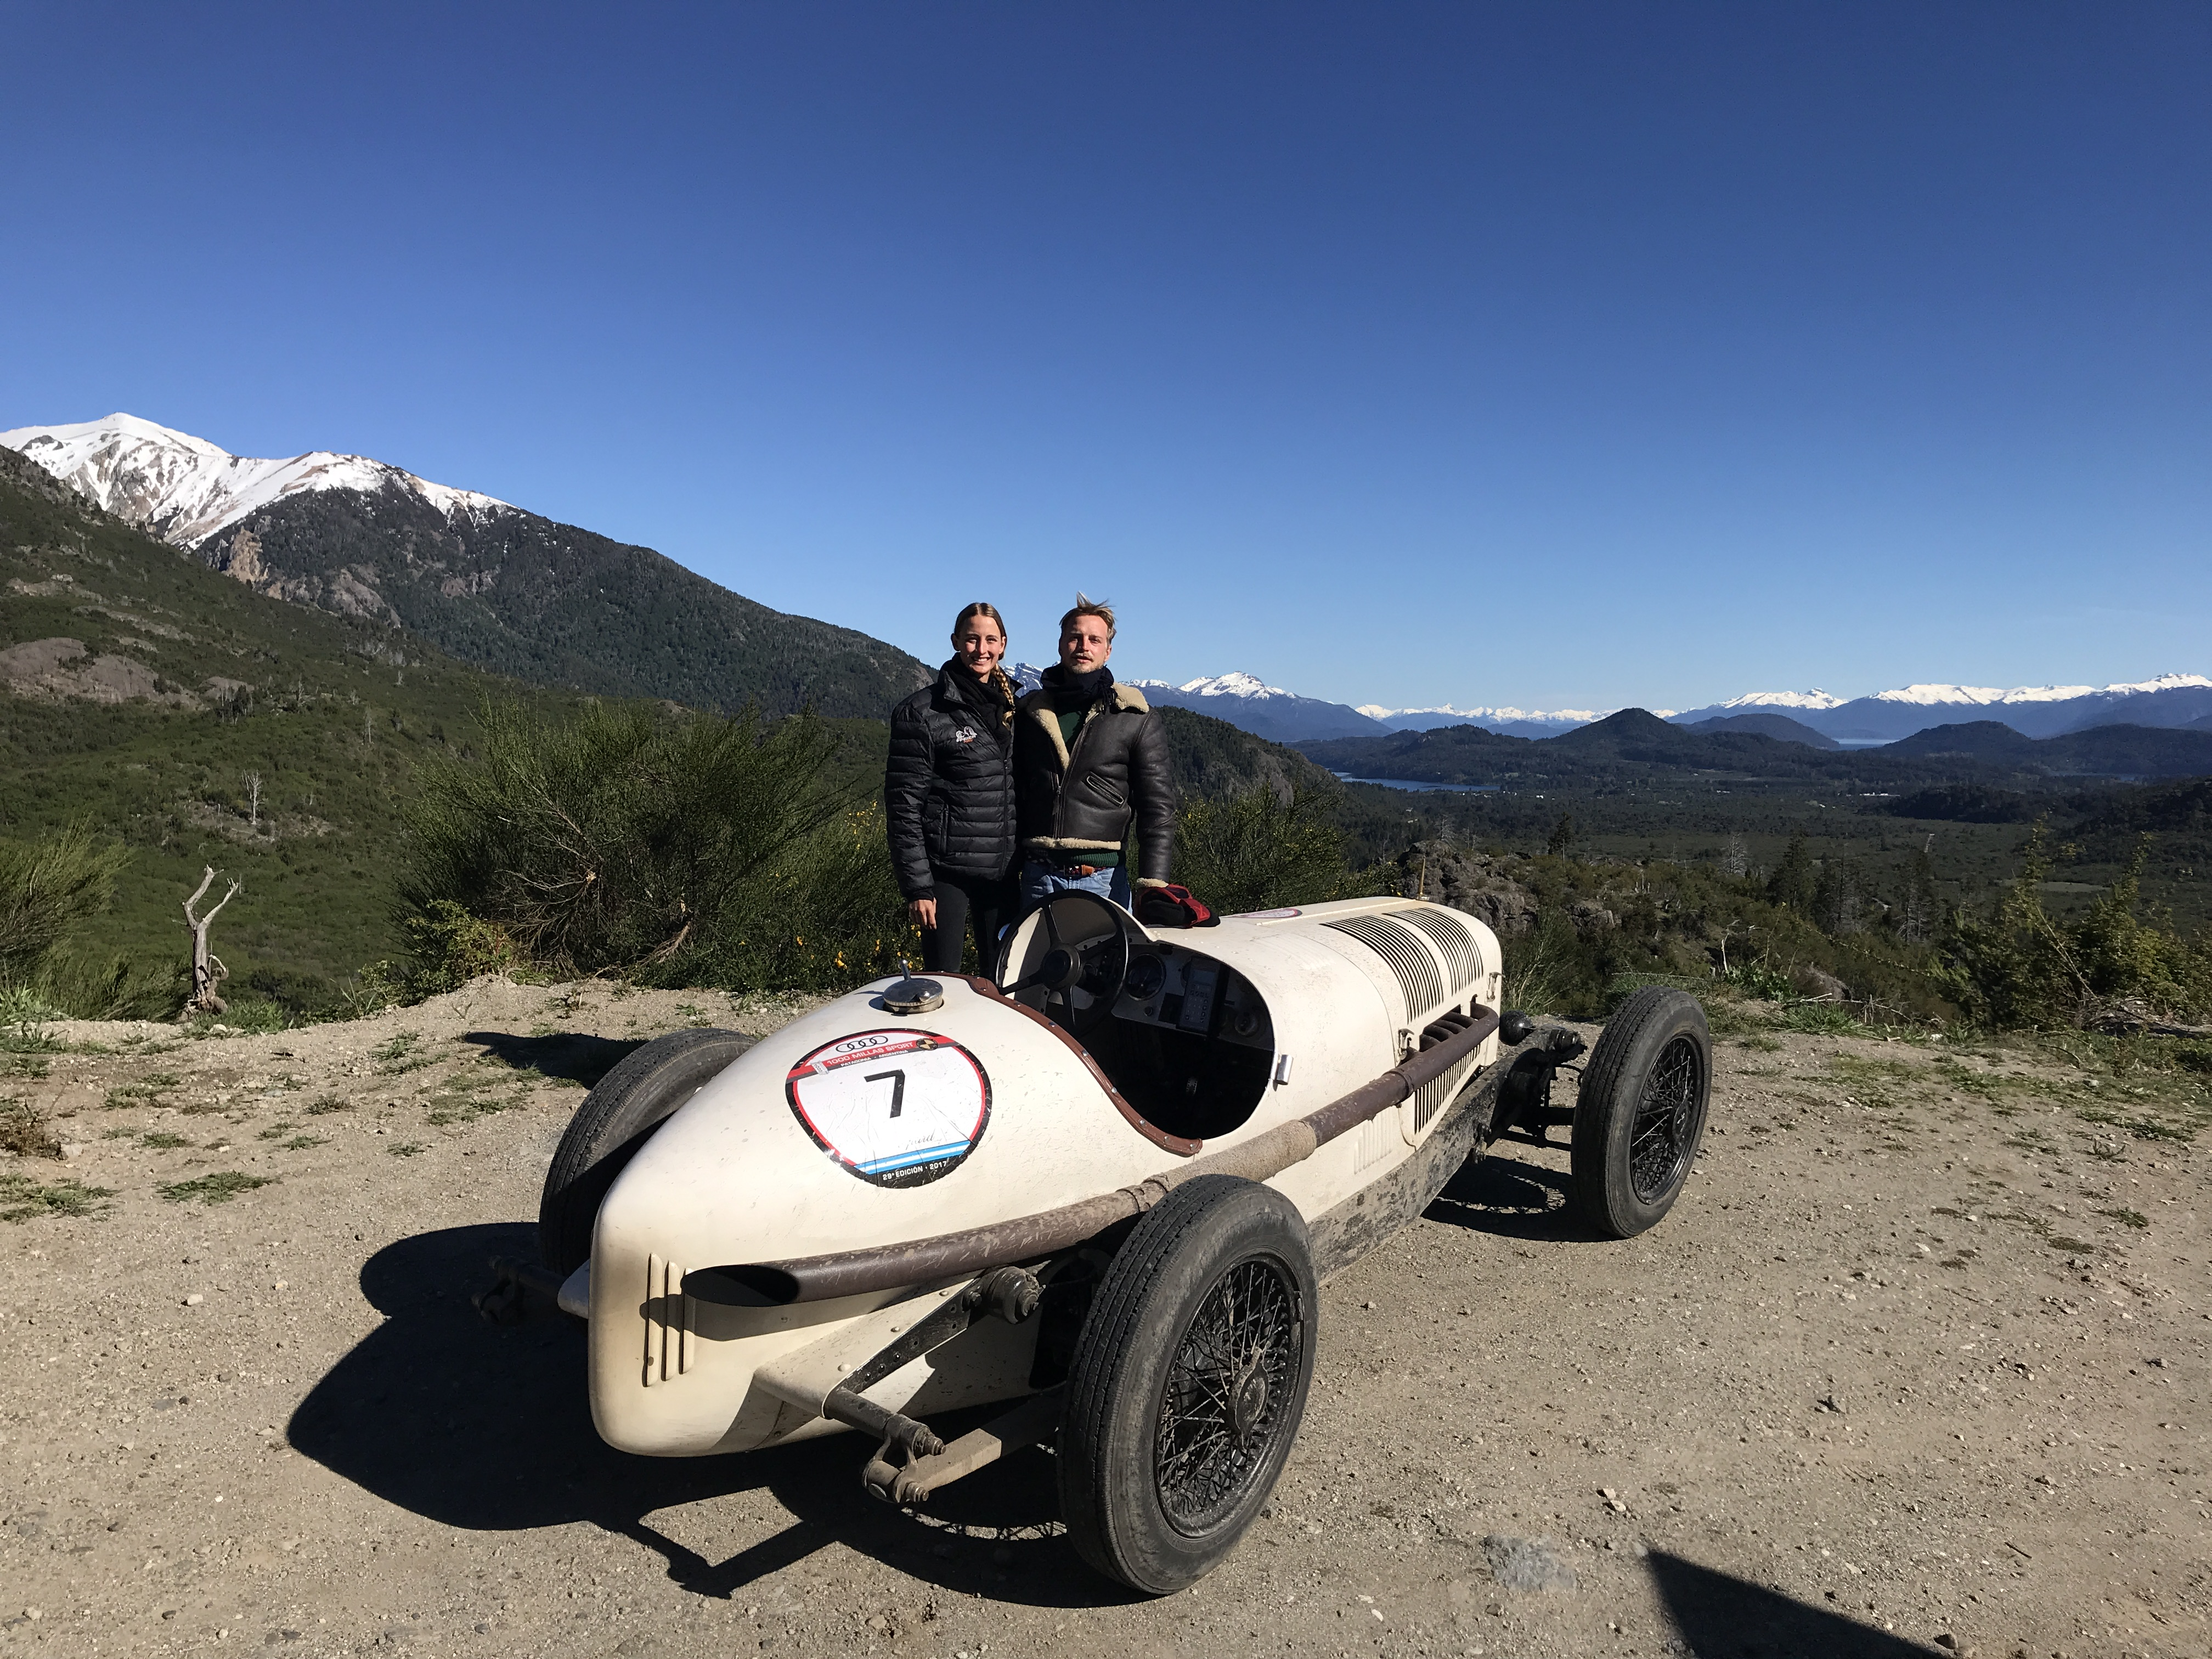 Thebetterplaces_bariloche_milemillas_oldtimer_carrace_fotos.JPG